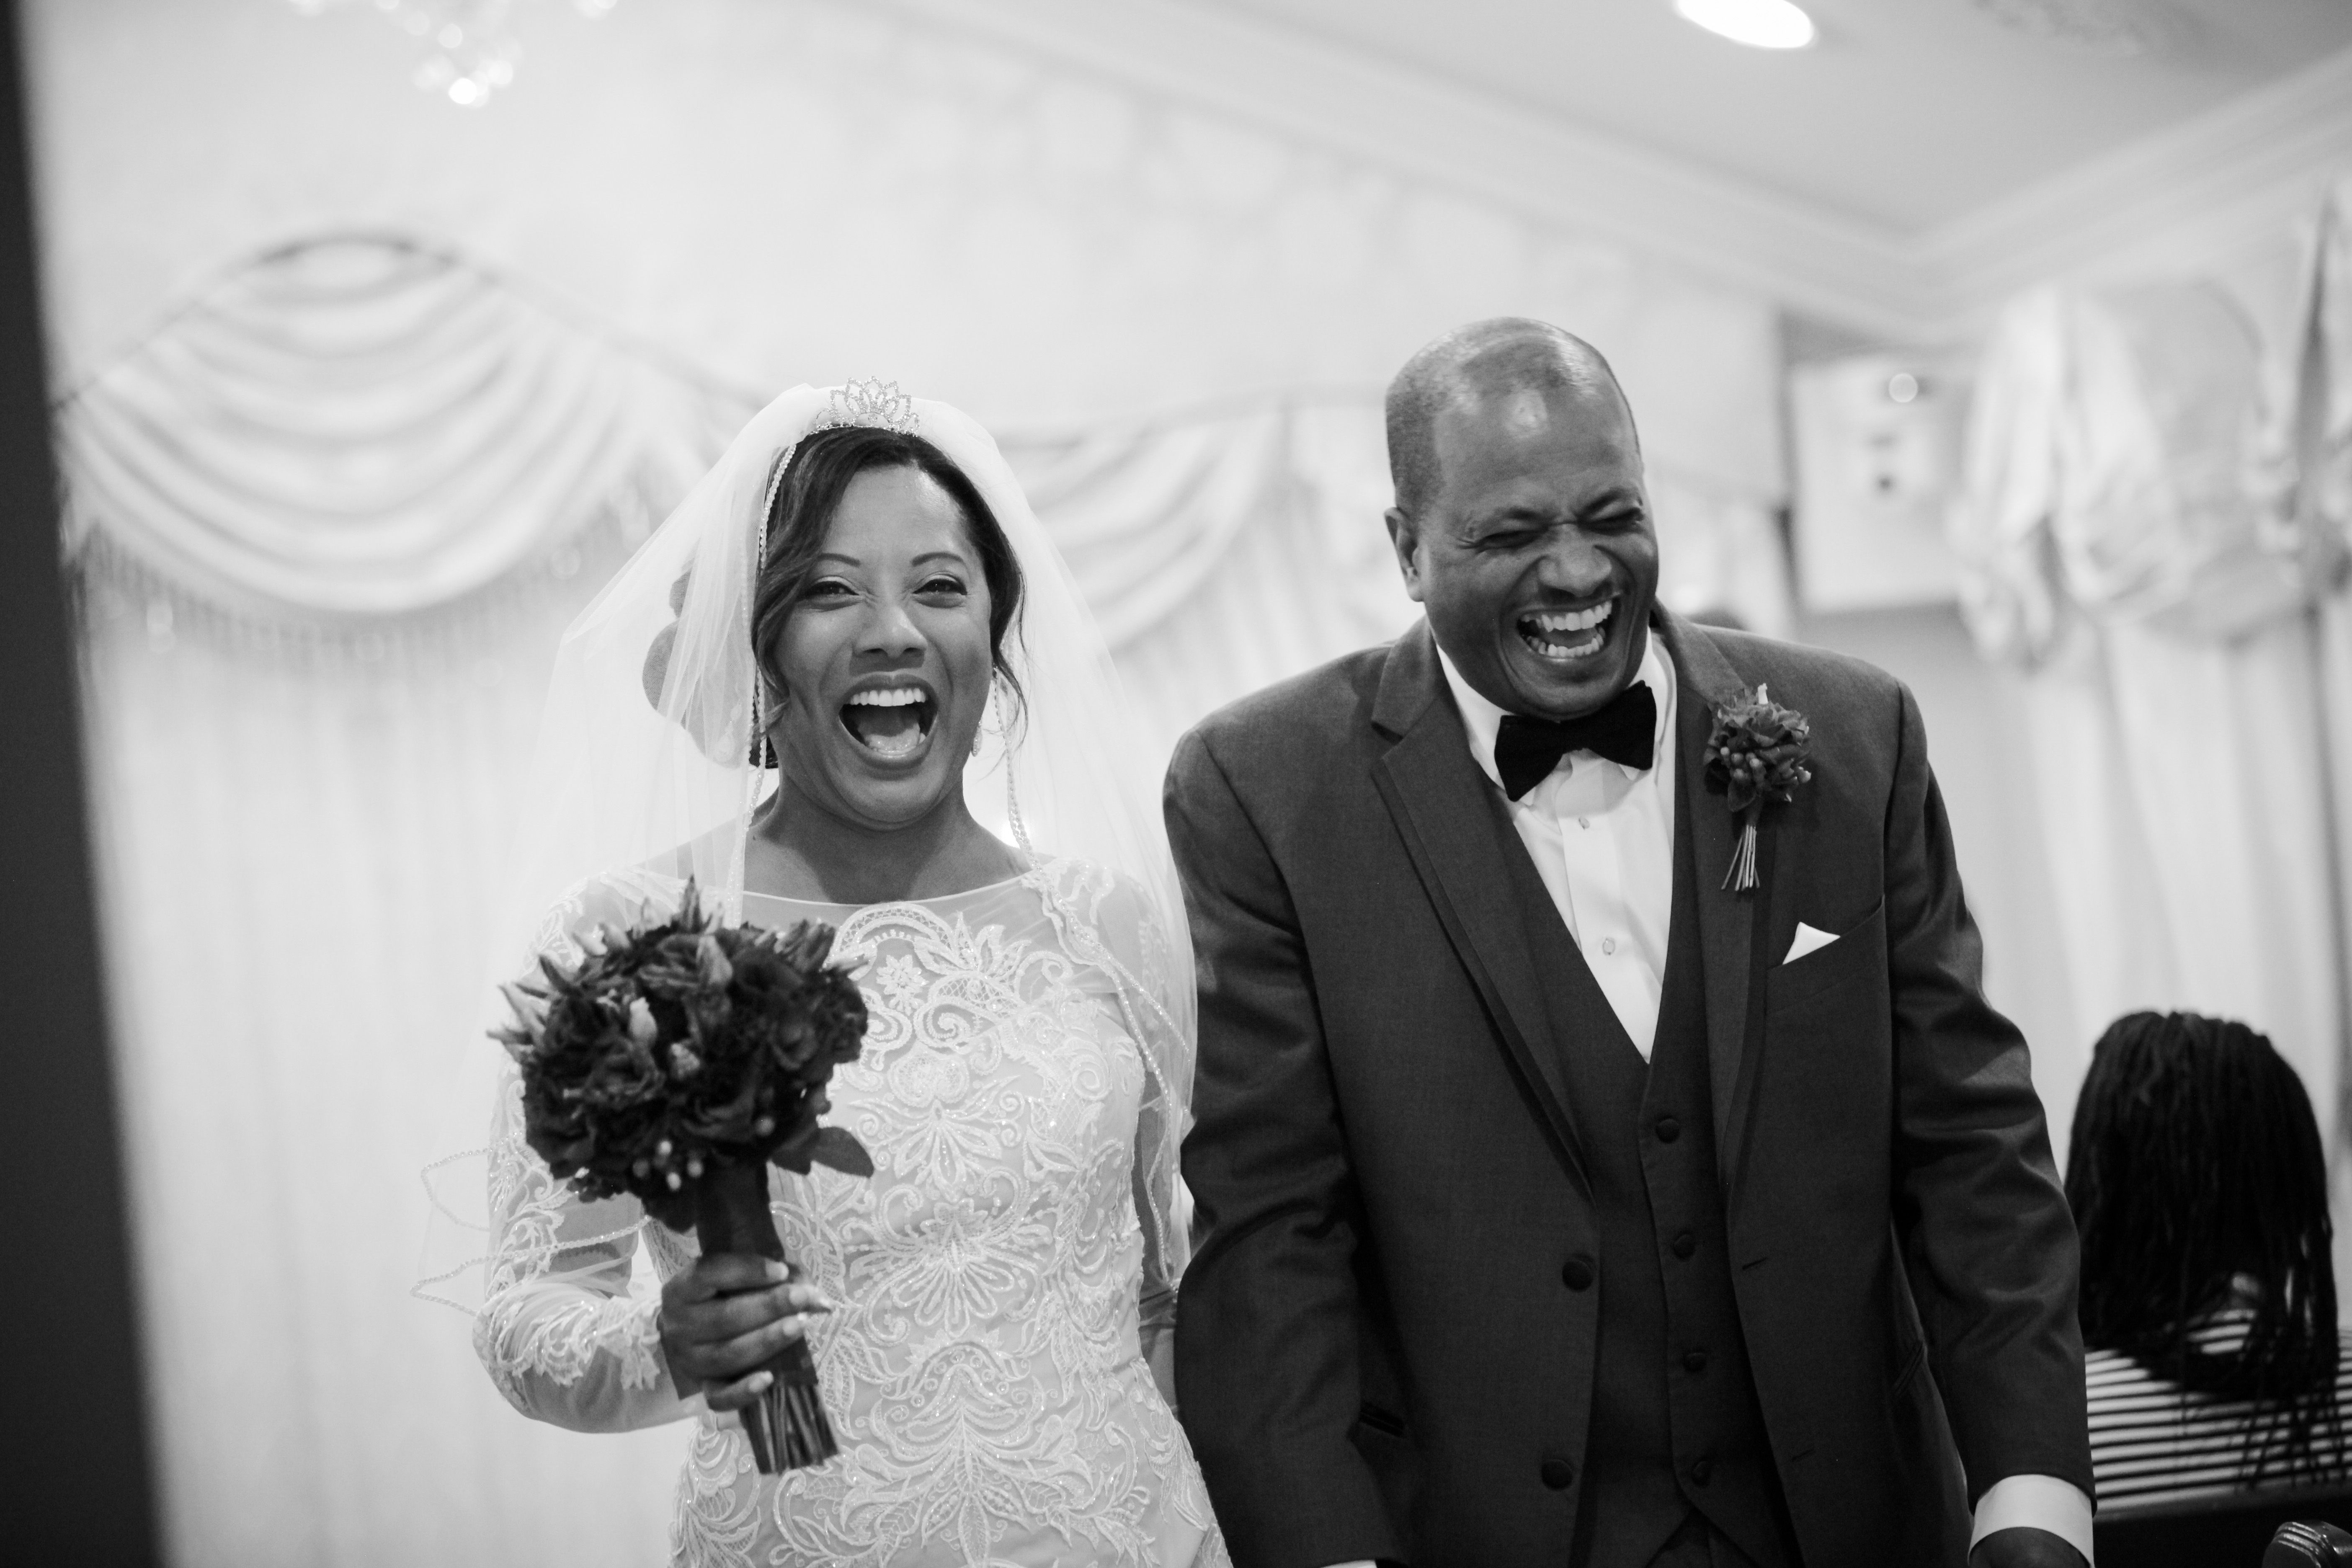 Ways To Have Fun At Your Vegas Wedding Be Happy And Smile As You Walk Down The Aisle Tip From Planners Chapel Of Flowers